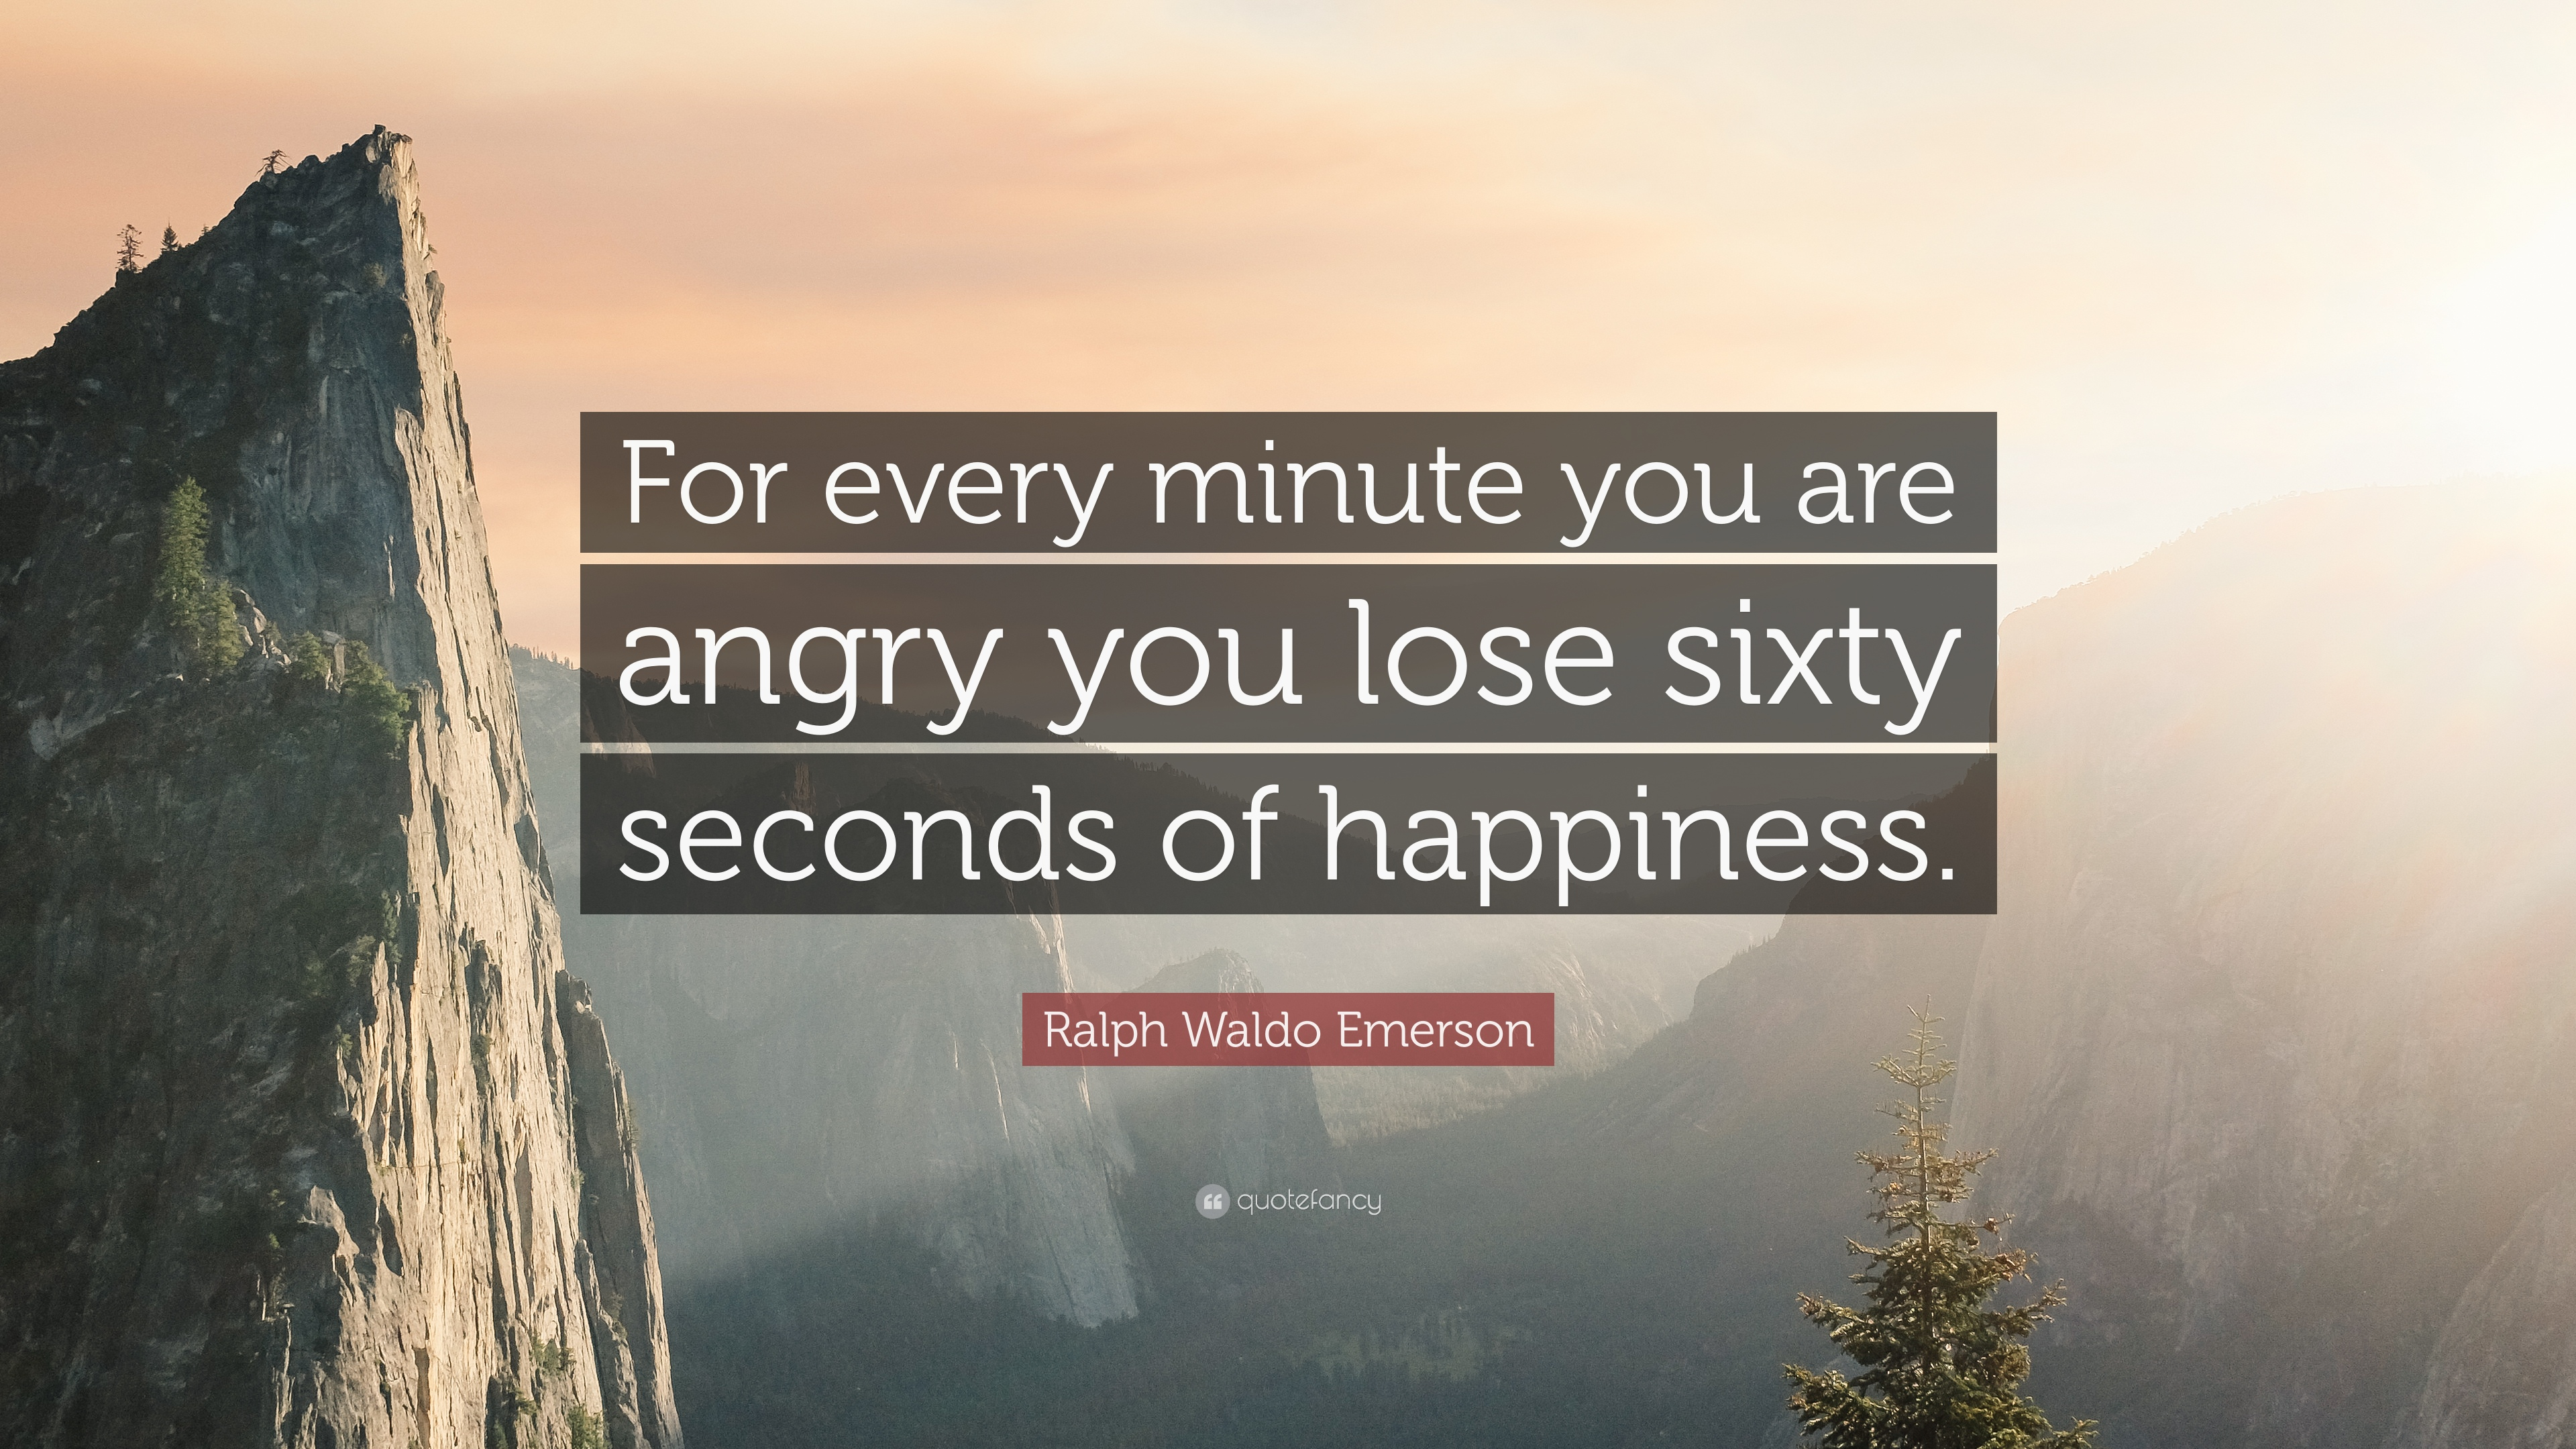 Forgiveness Quotes: U201cFor Every Minute You Are Angry You Lose Sixty Seconds  Of Happiness